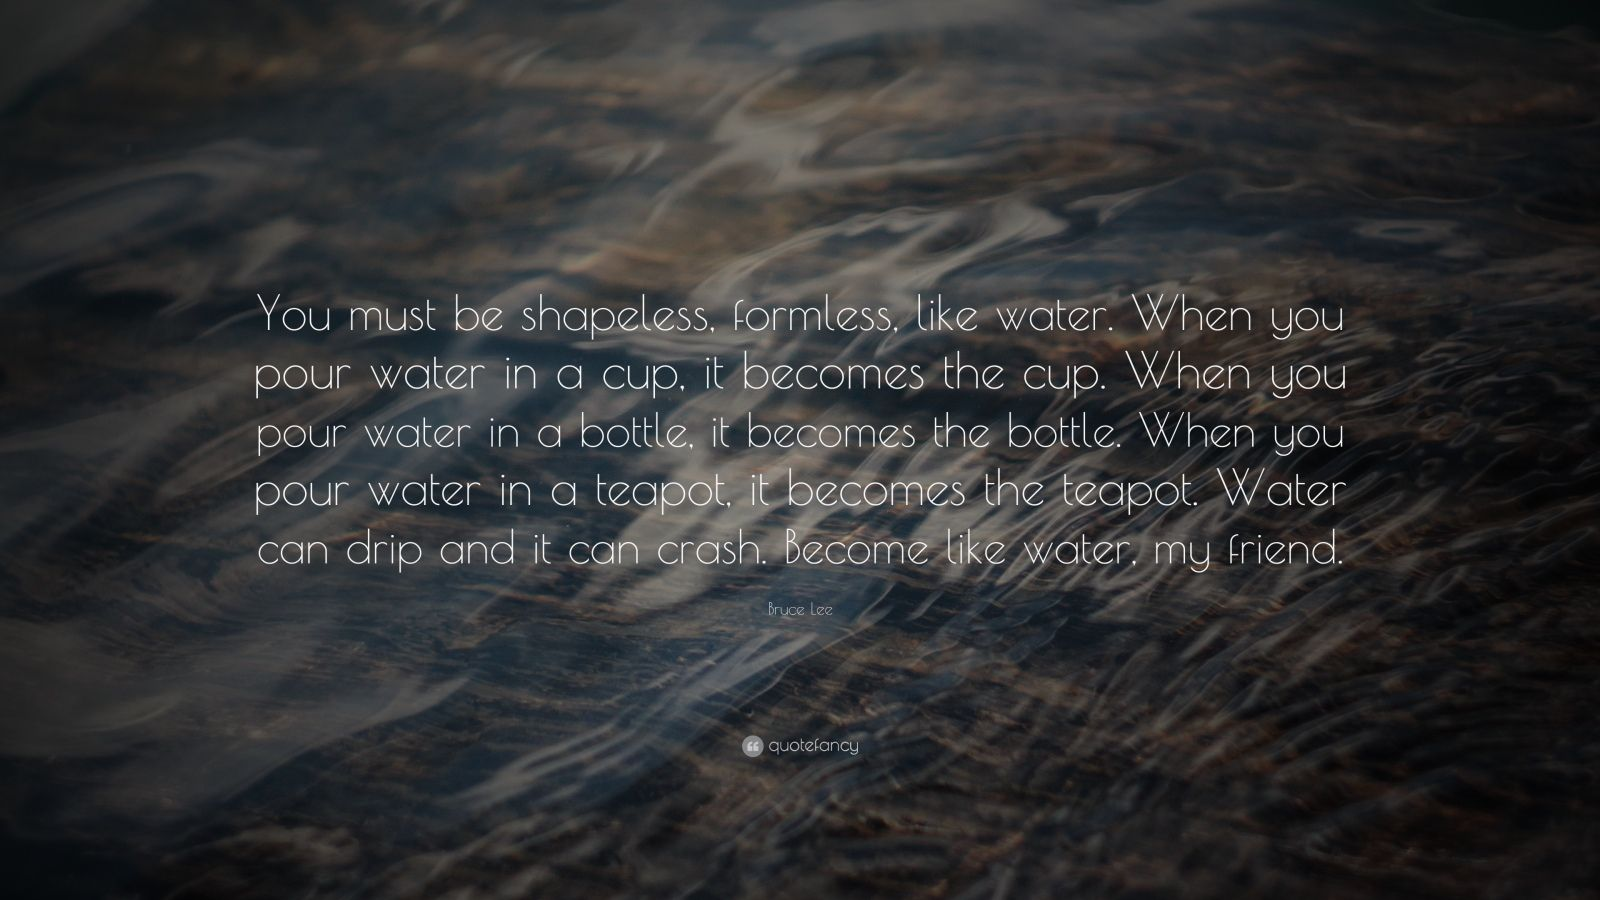 Bruce Lee Quote You Must Be Shapeless Formless Like Water When You